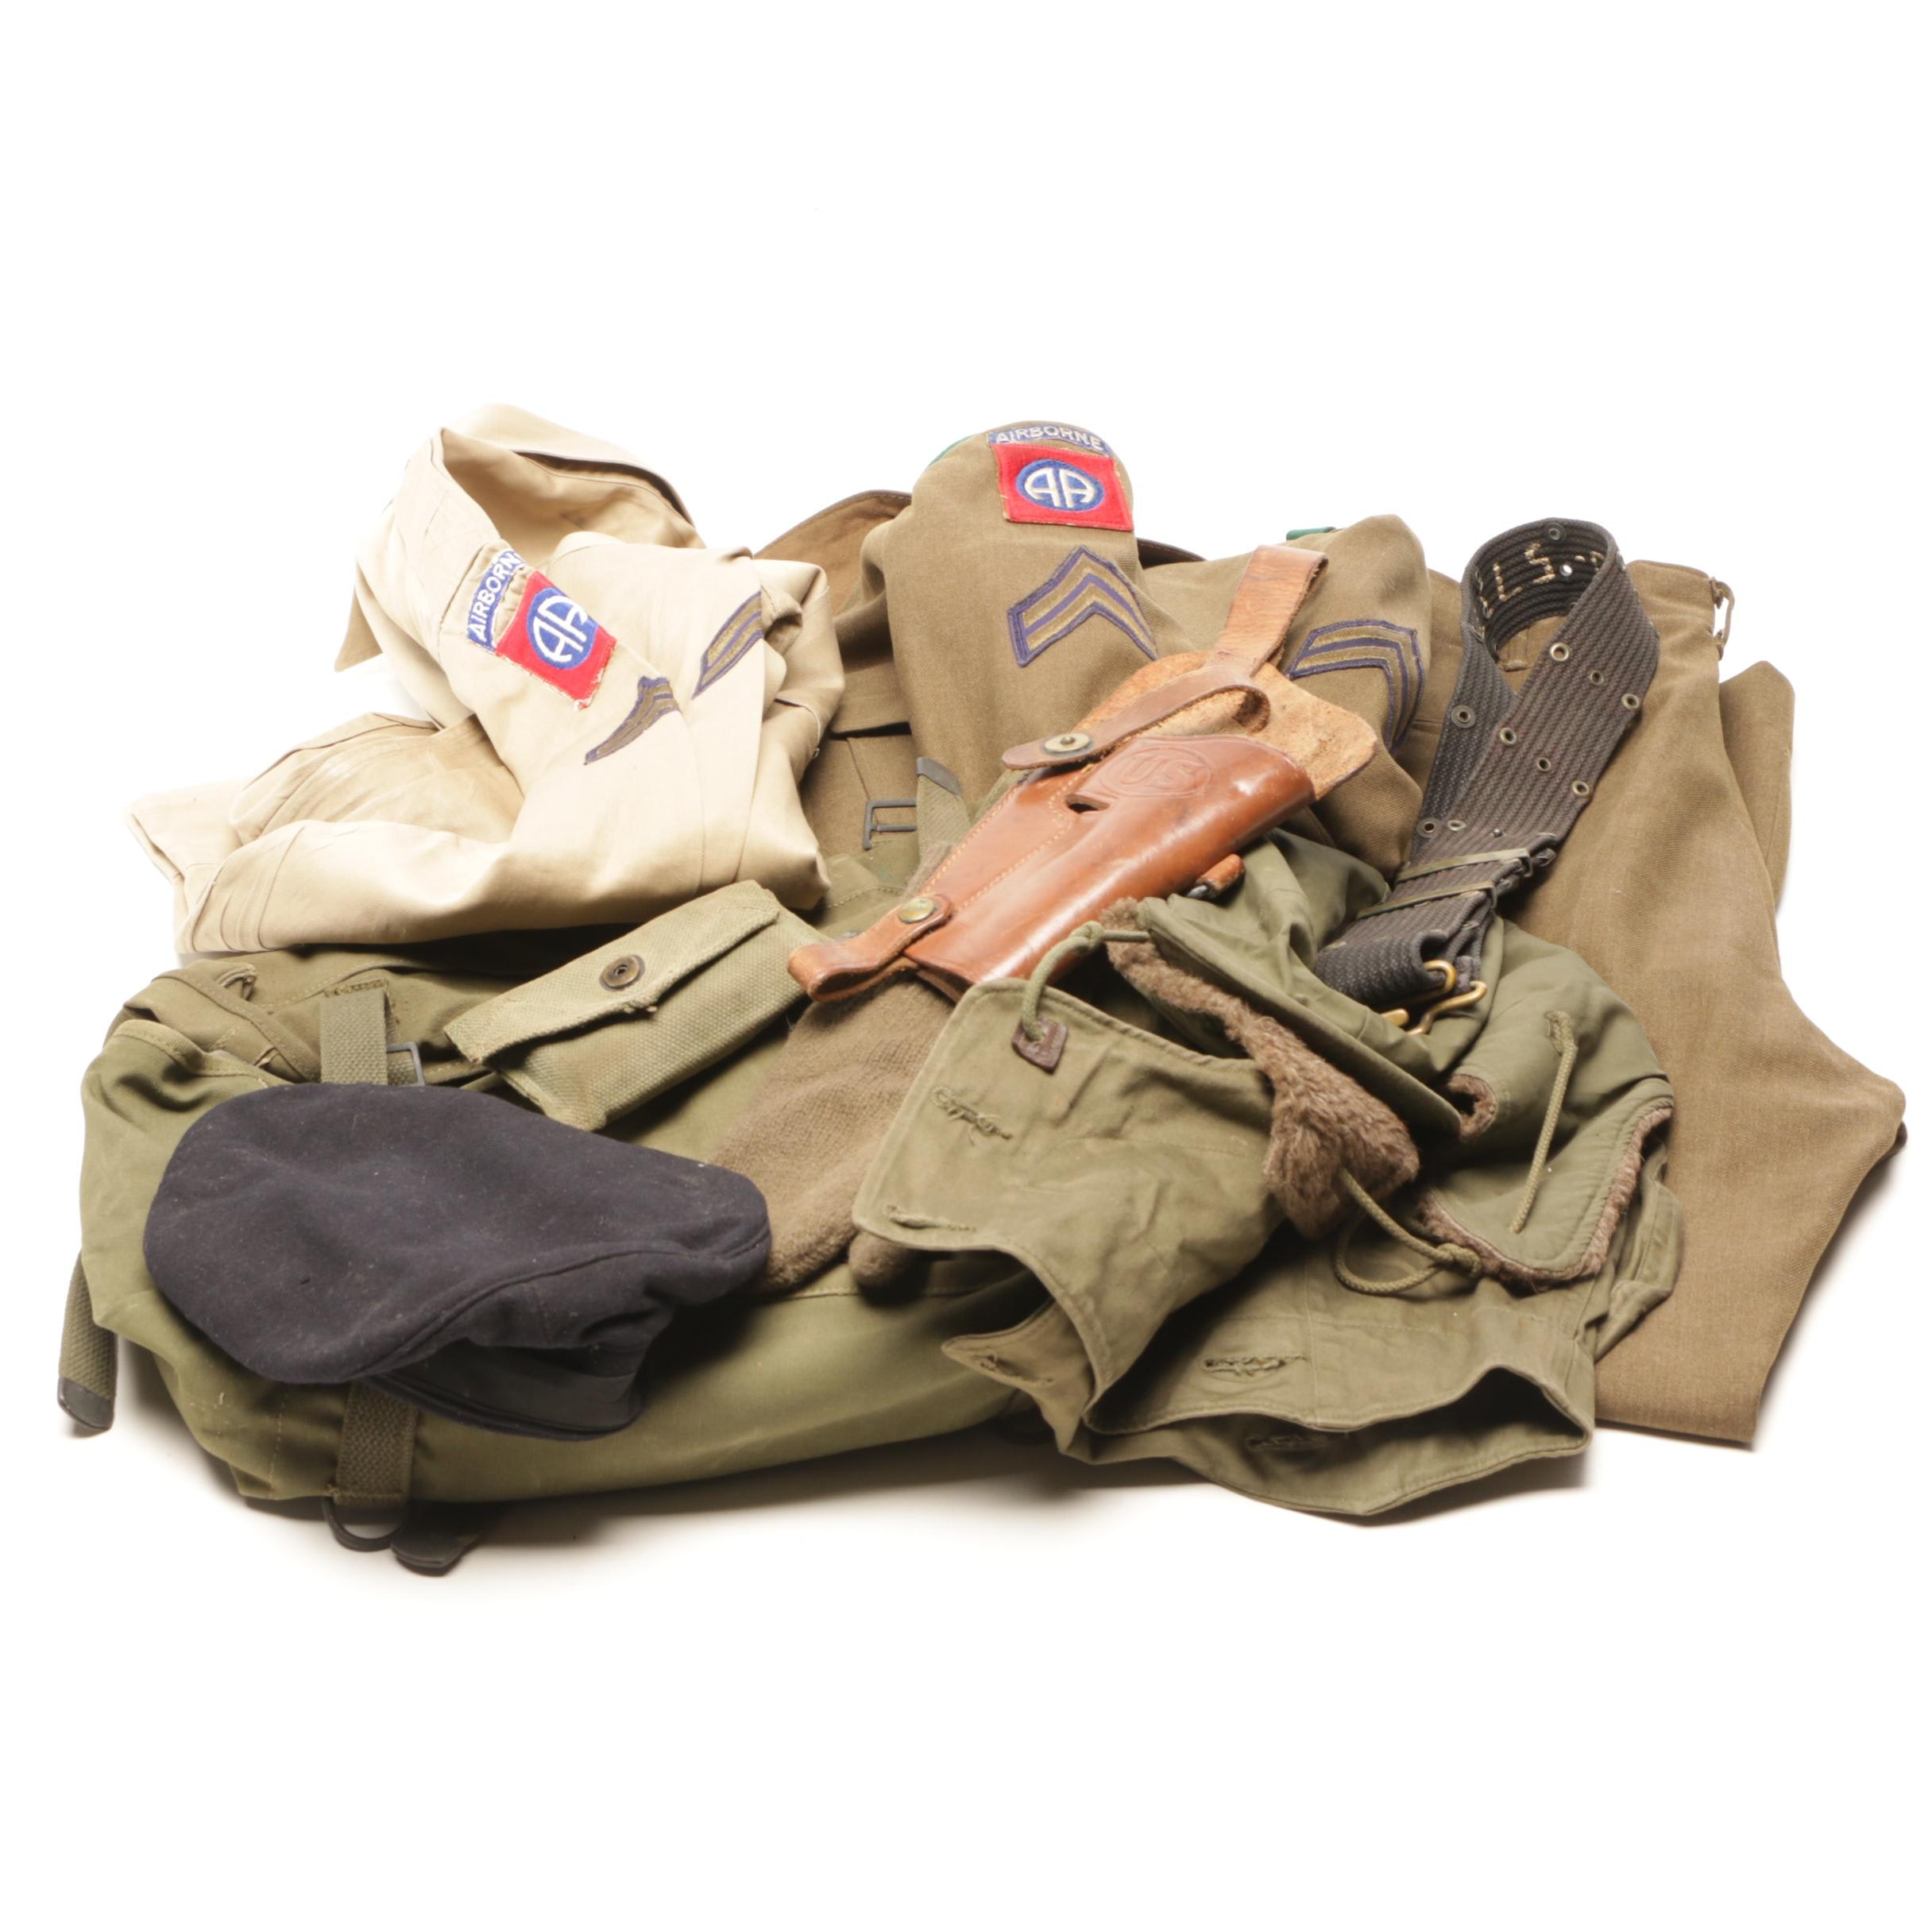 WWII United States Airborne Memorabilia Including Uniform, Bags and More